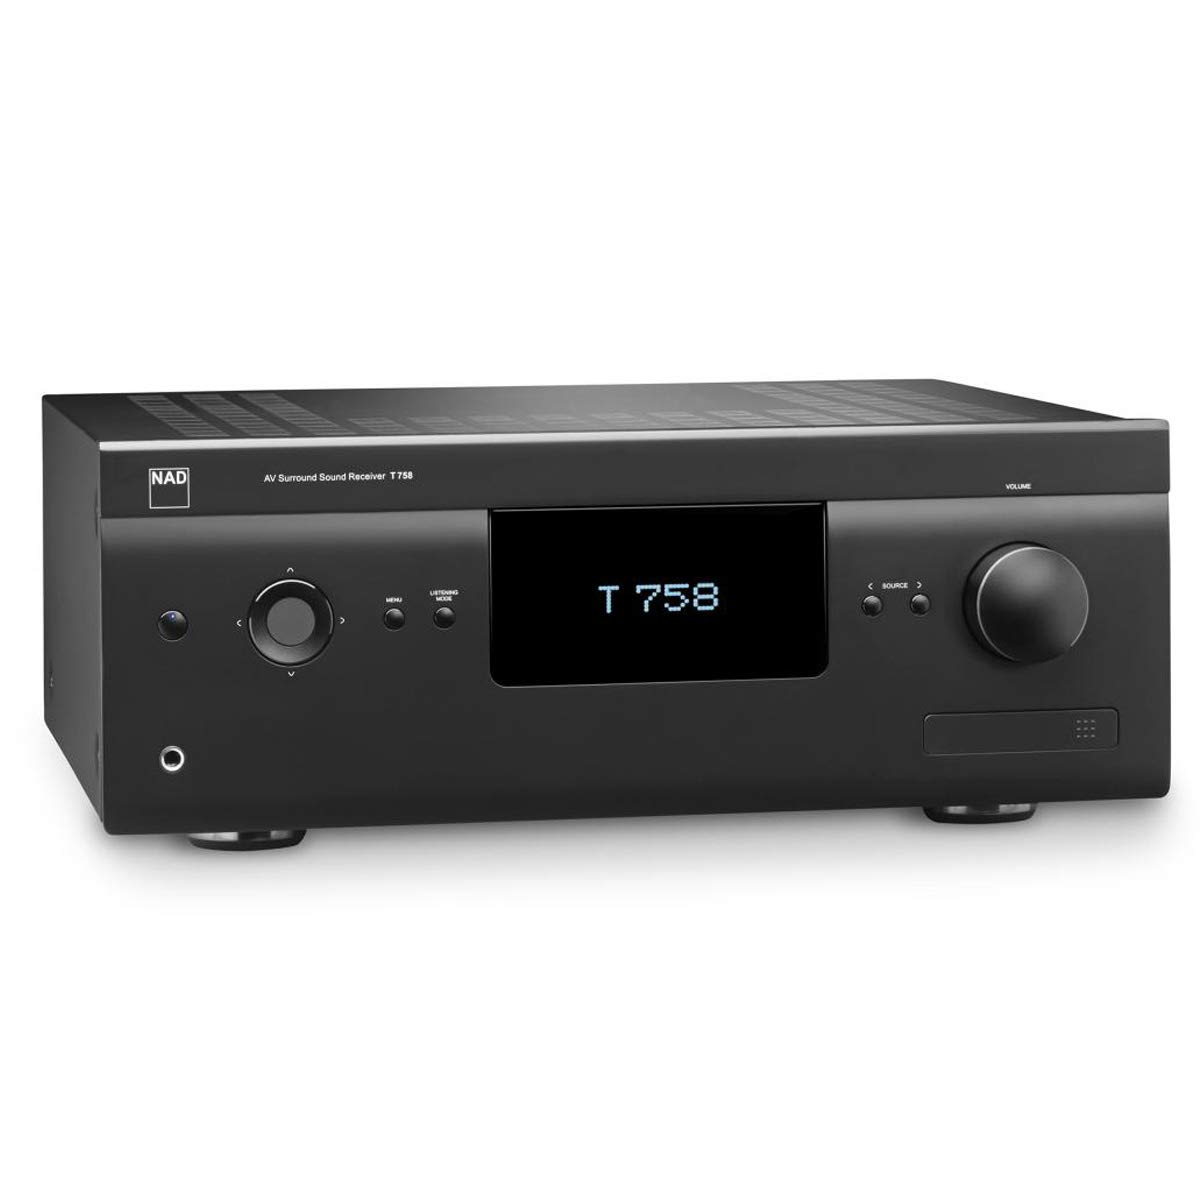 NAD - T 758 v3 Surround Receiver: Amazon.in: Electronics